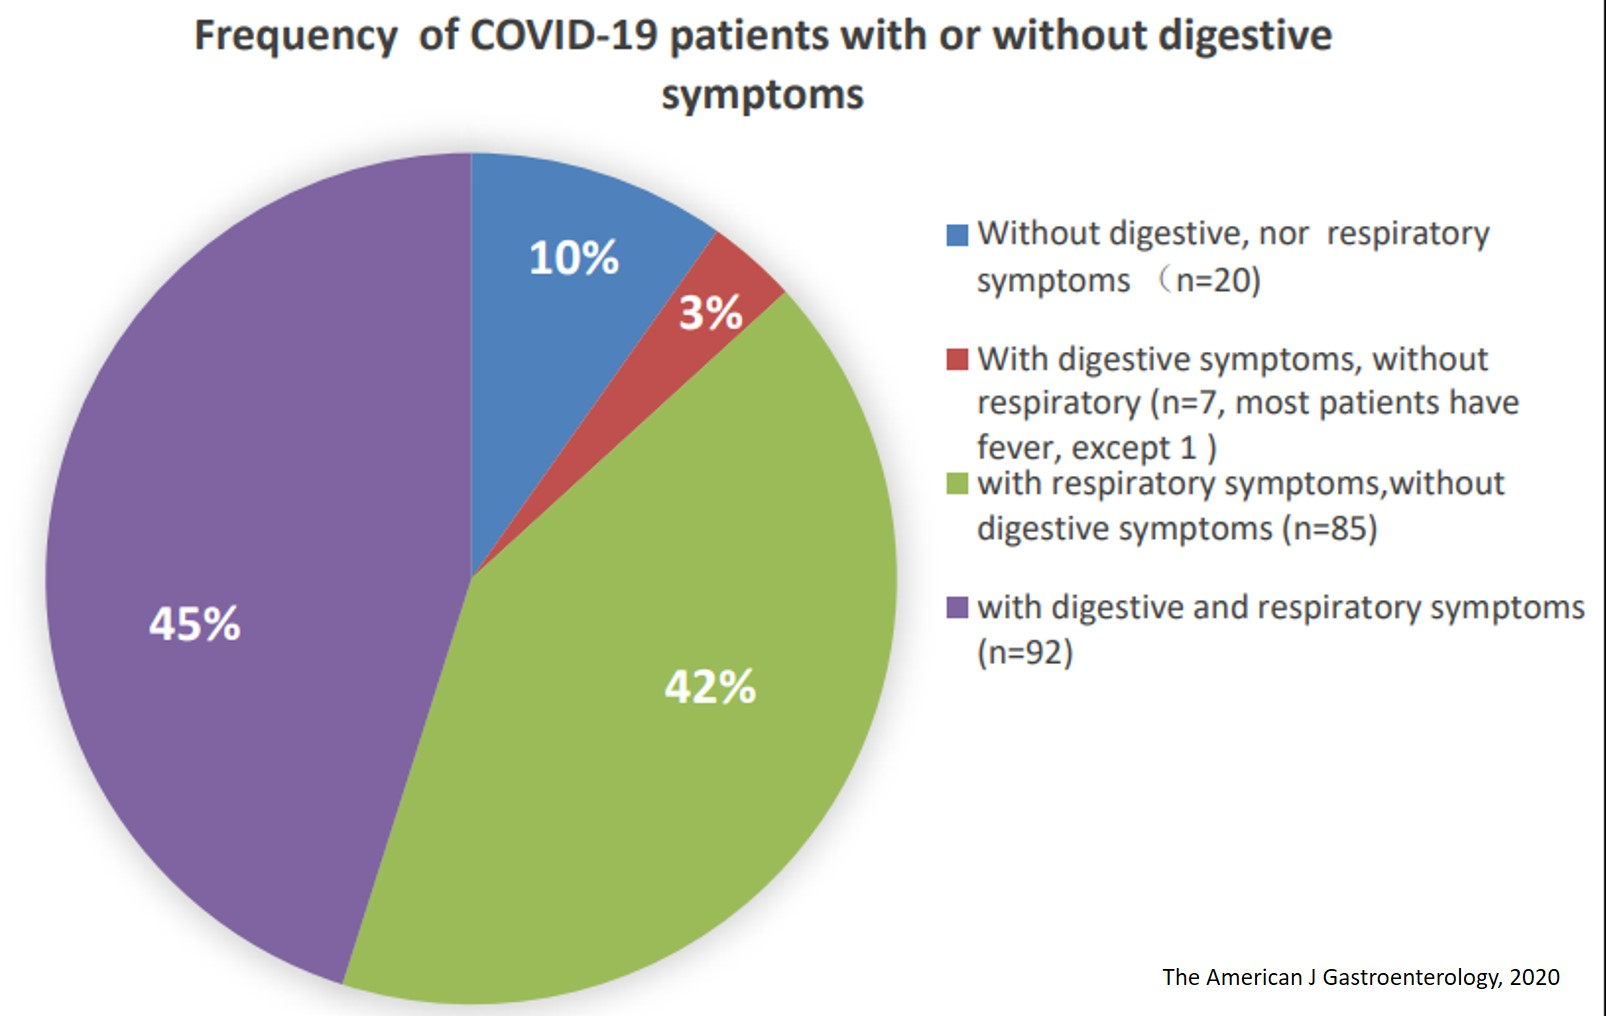 Digestive symptoms are prominent among COVID-19 patients